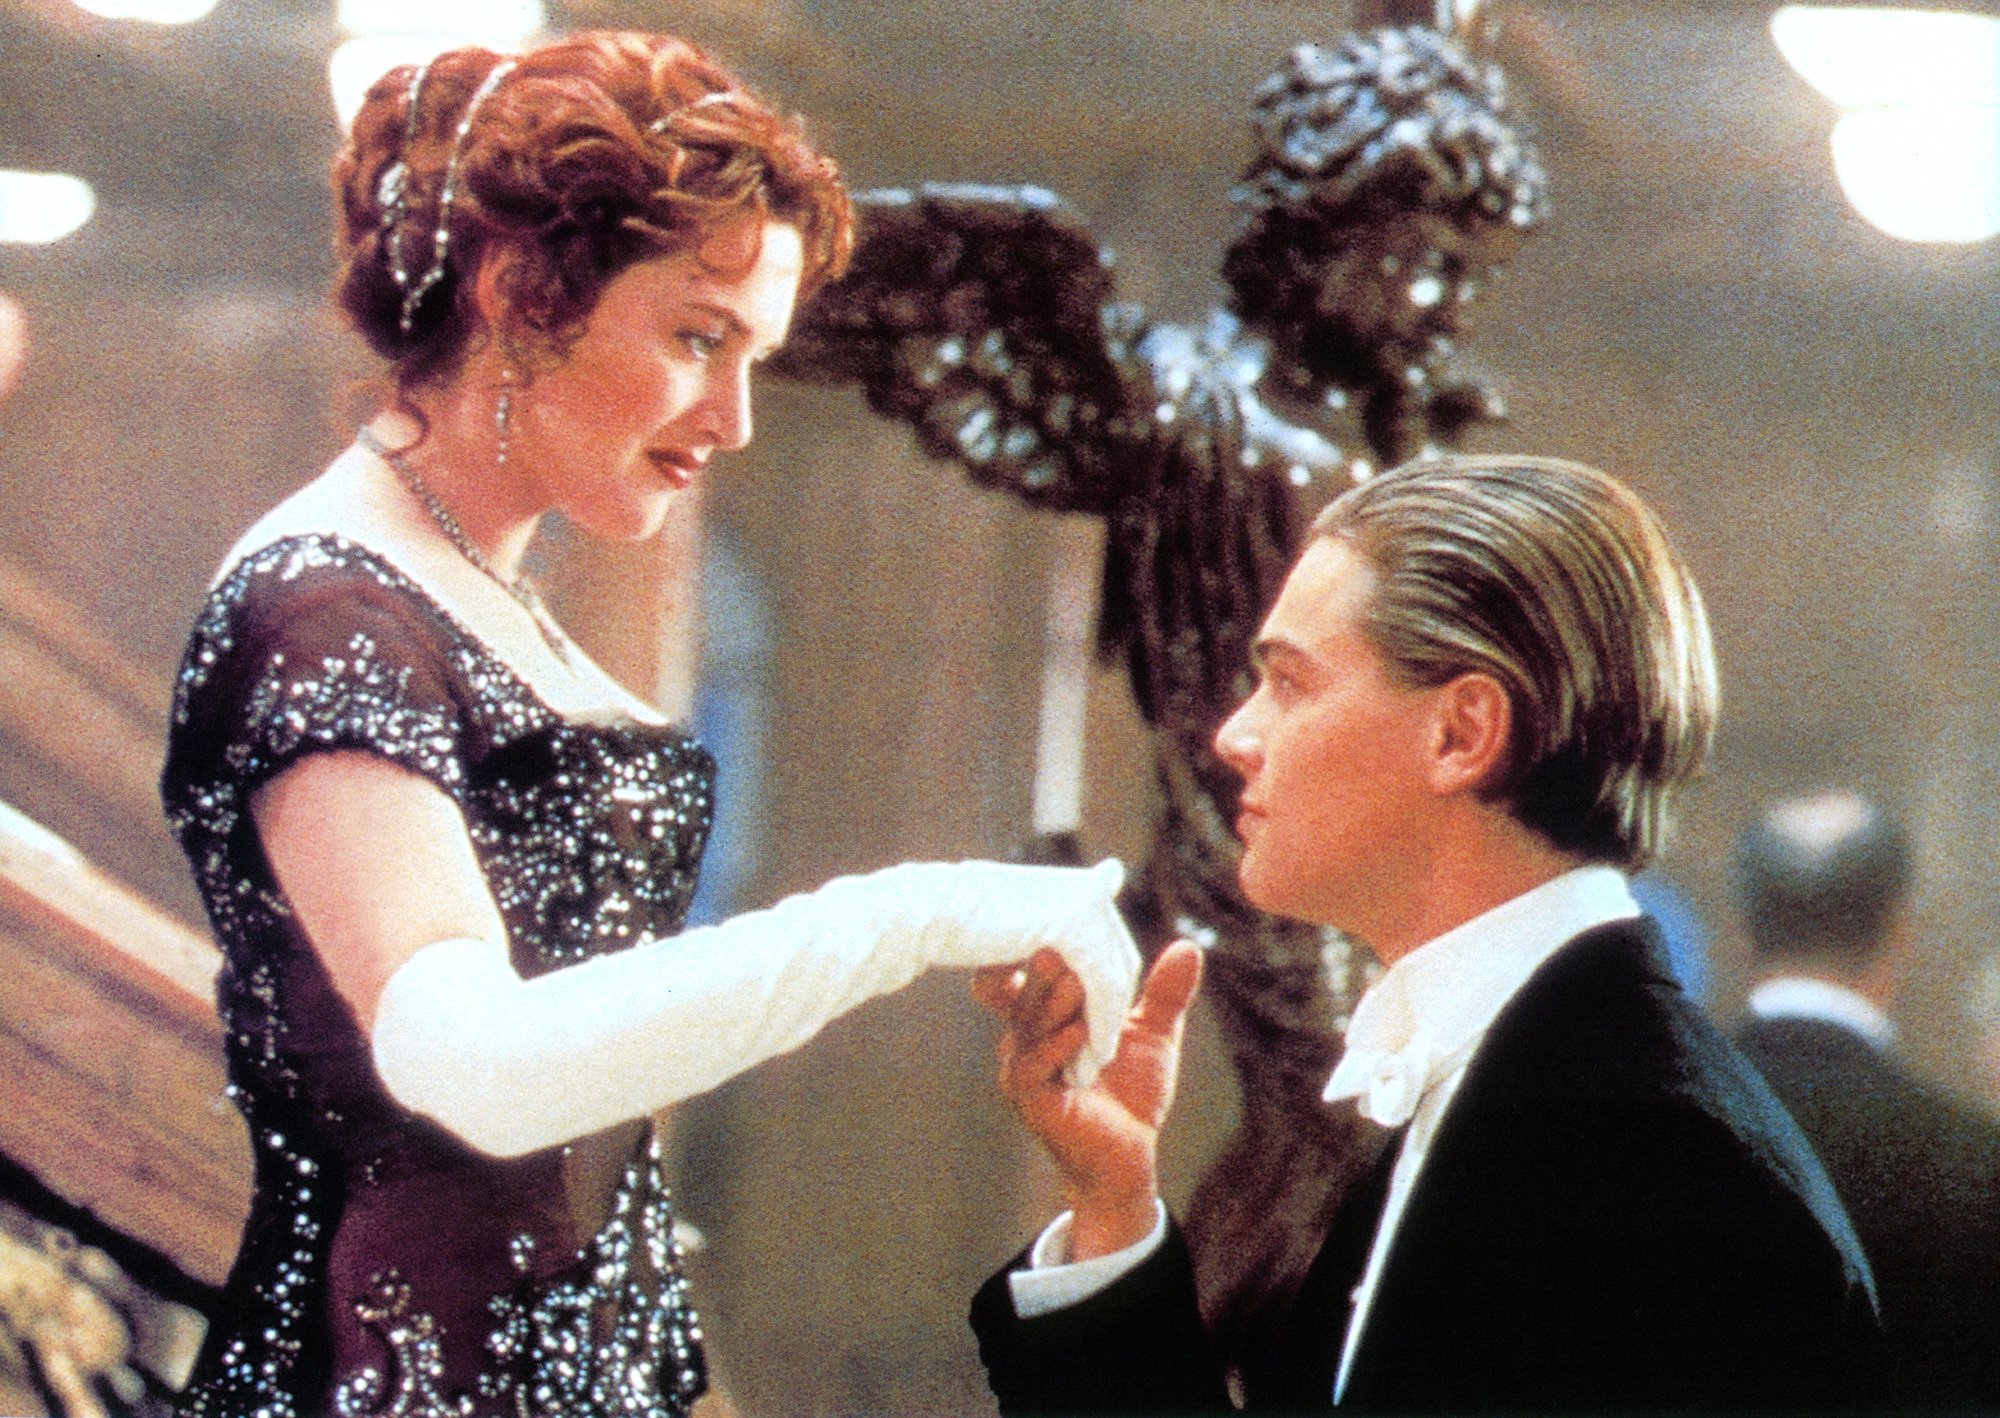 Titanic to return to theaters for 20th anniversary